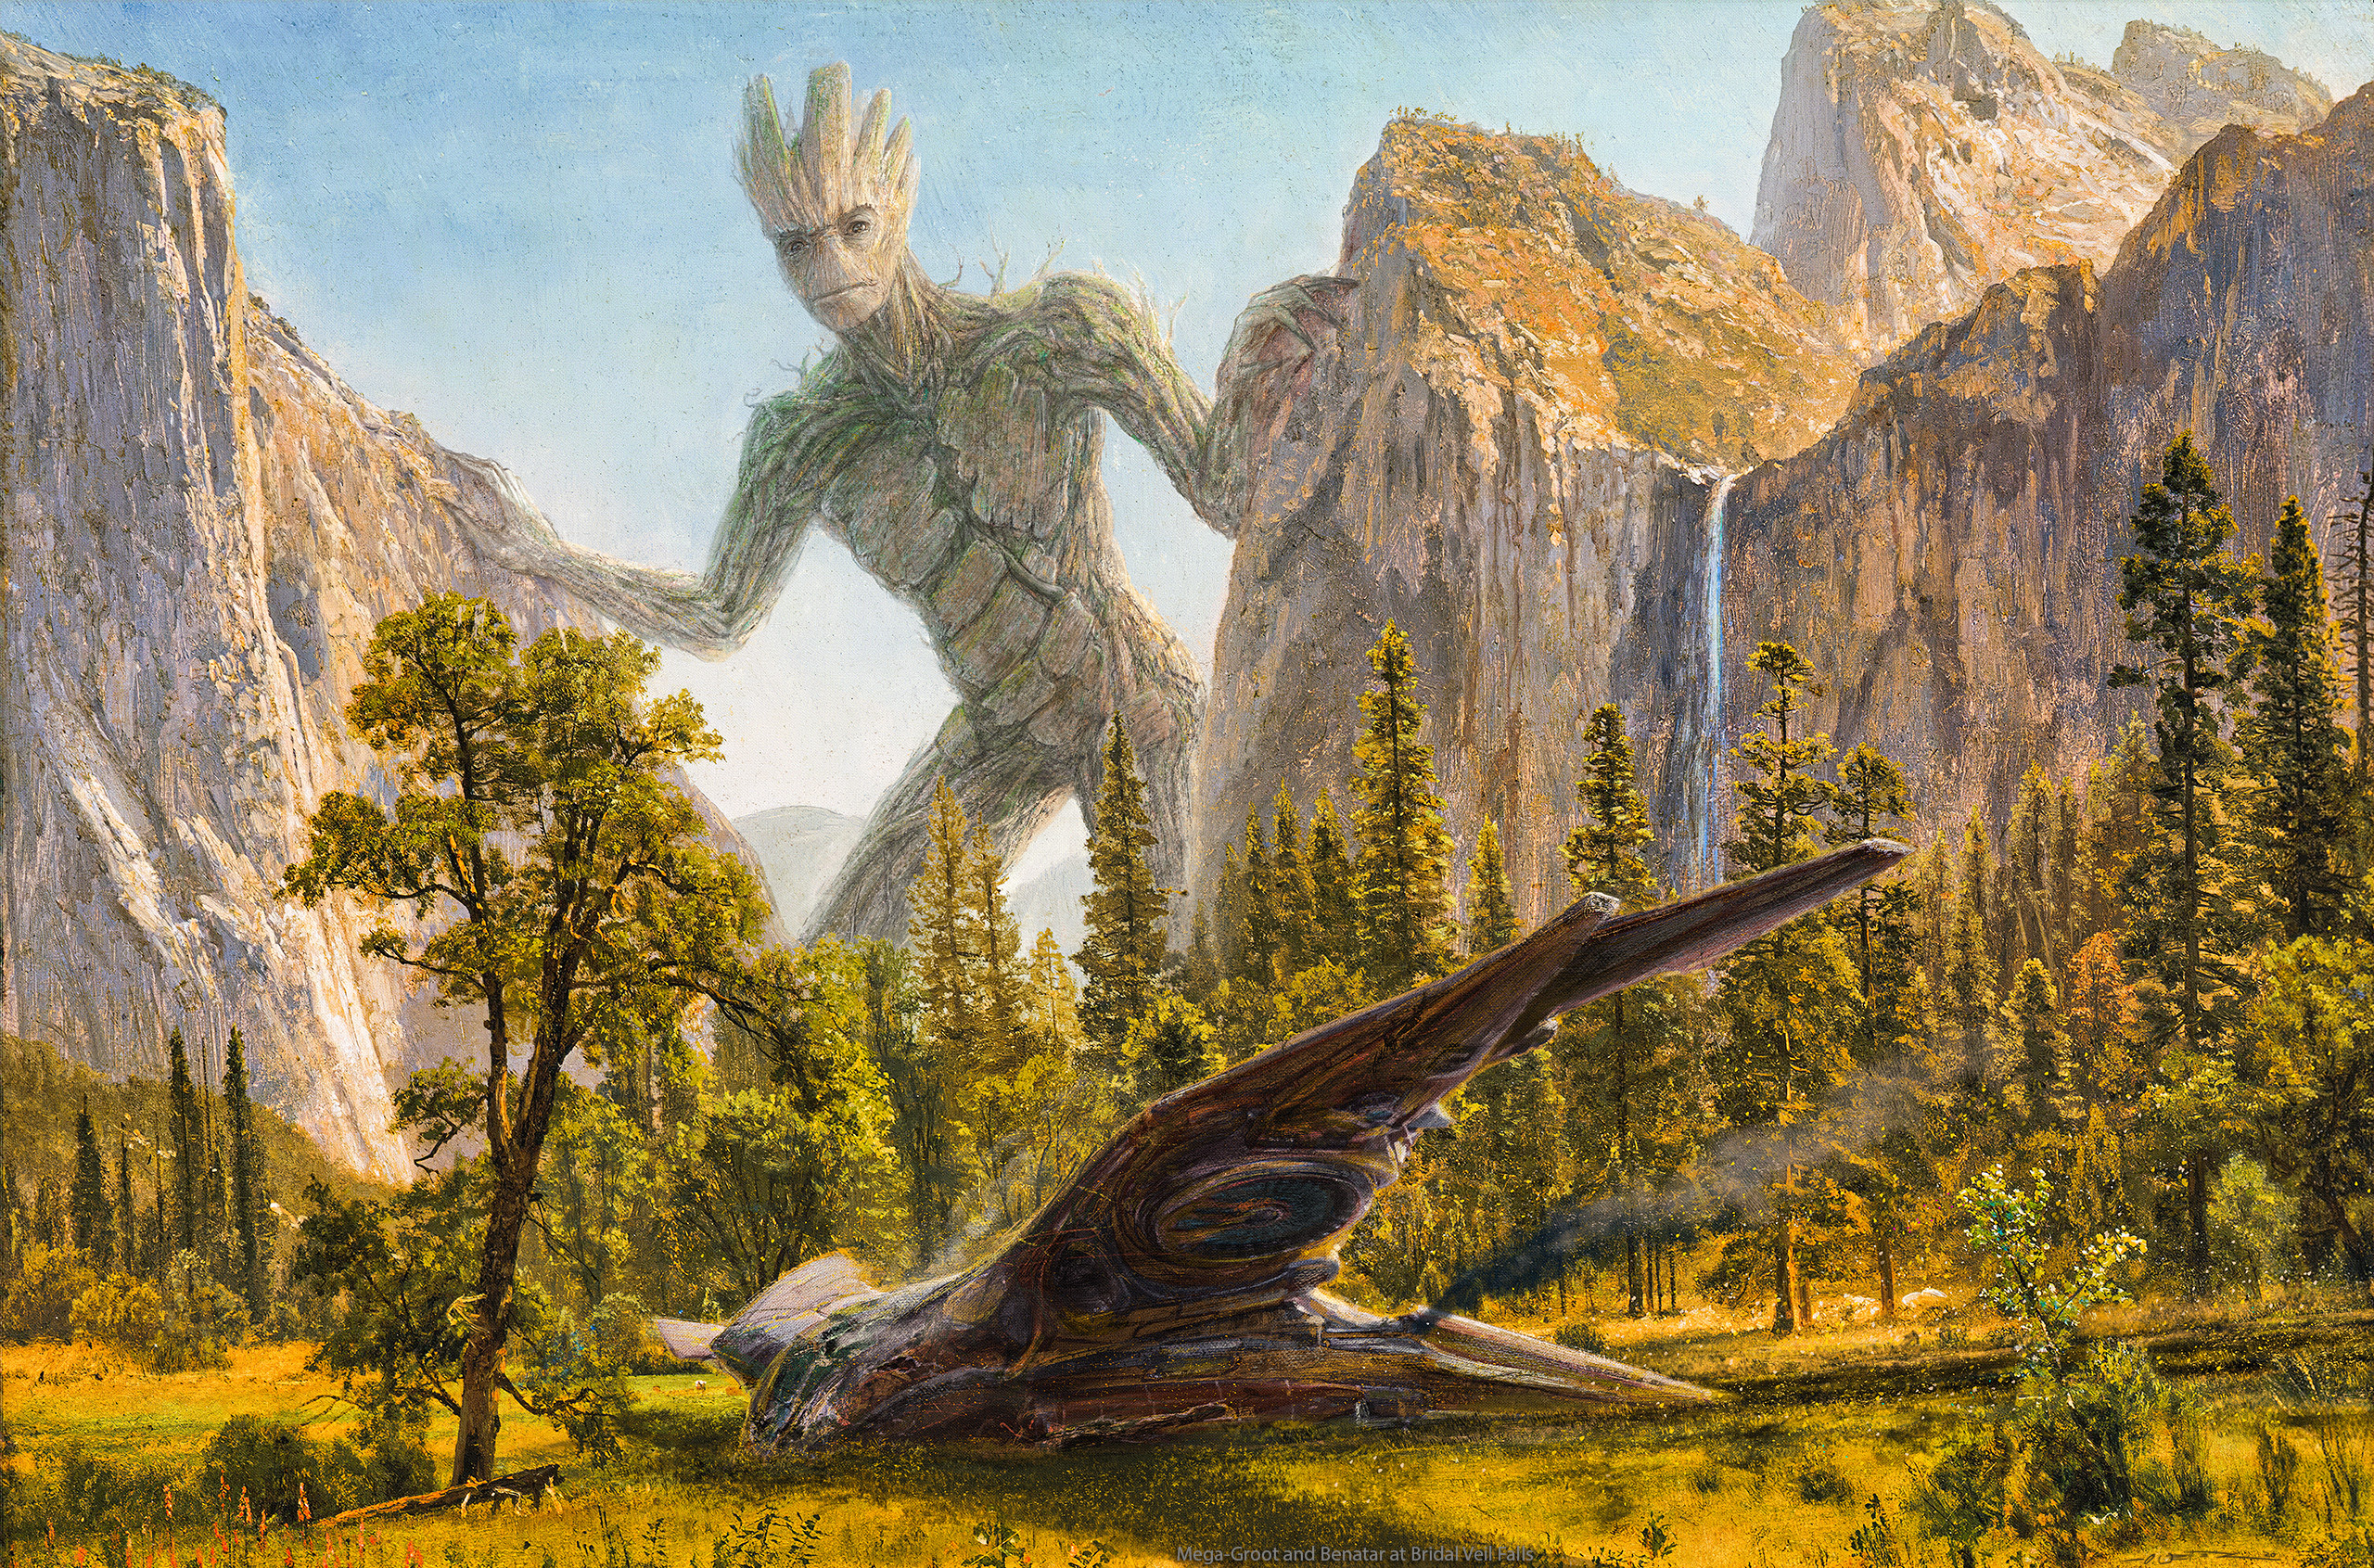 2020 Ancient Kaiju version with Groot and Benatar